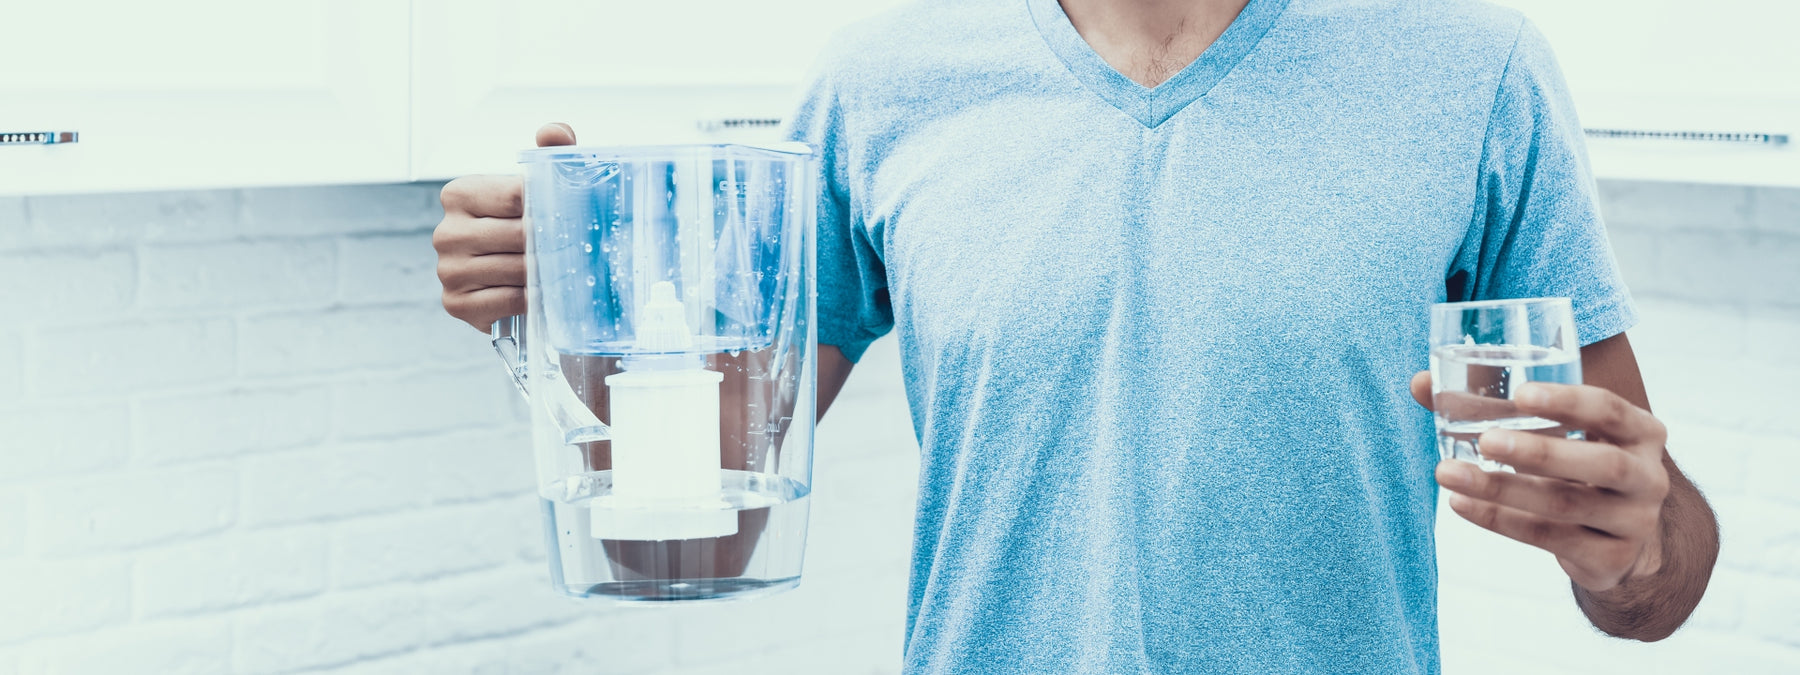 What is Dry Fasting and Why Would You Use It?